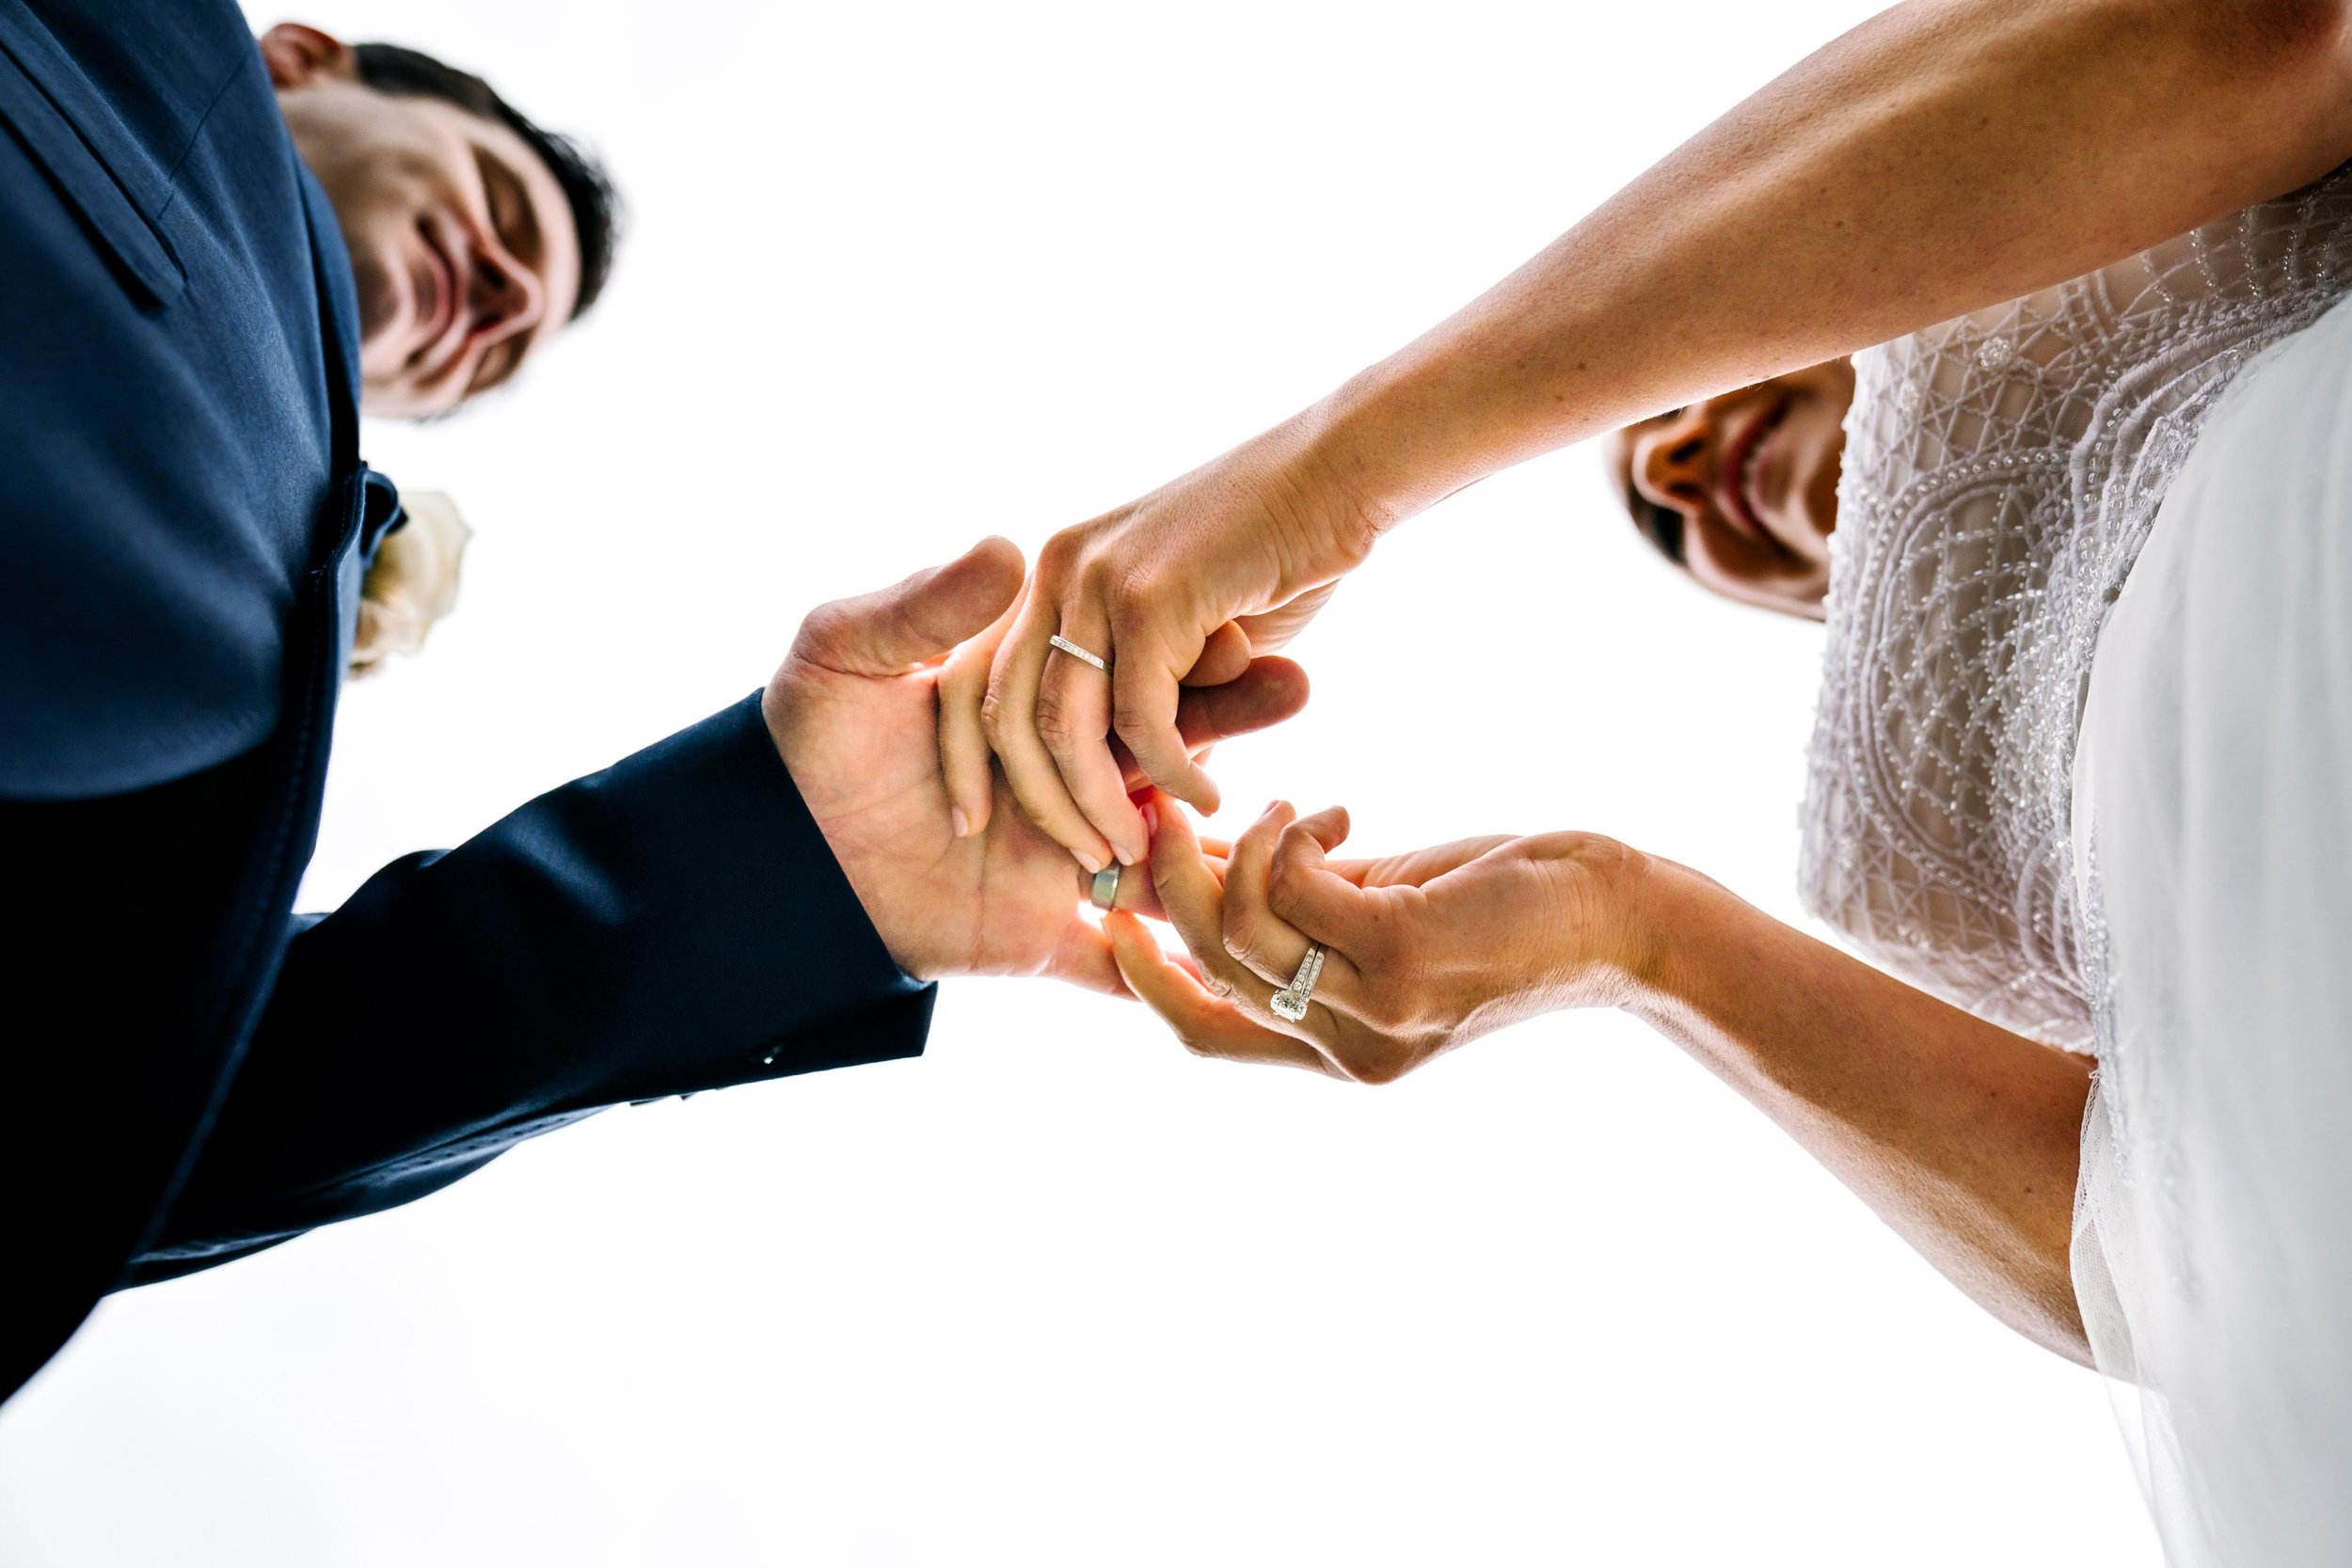 Bride and groom exchanging rings, view from below